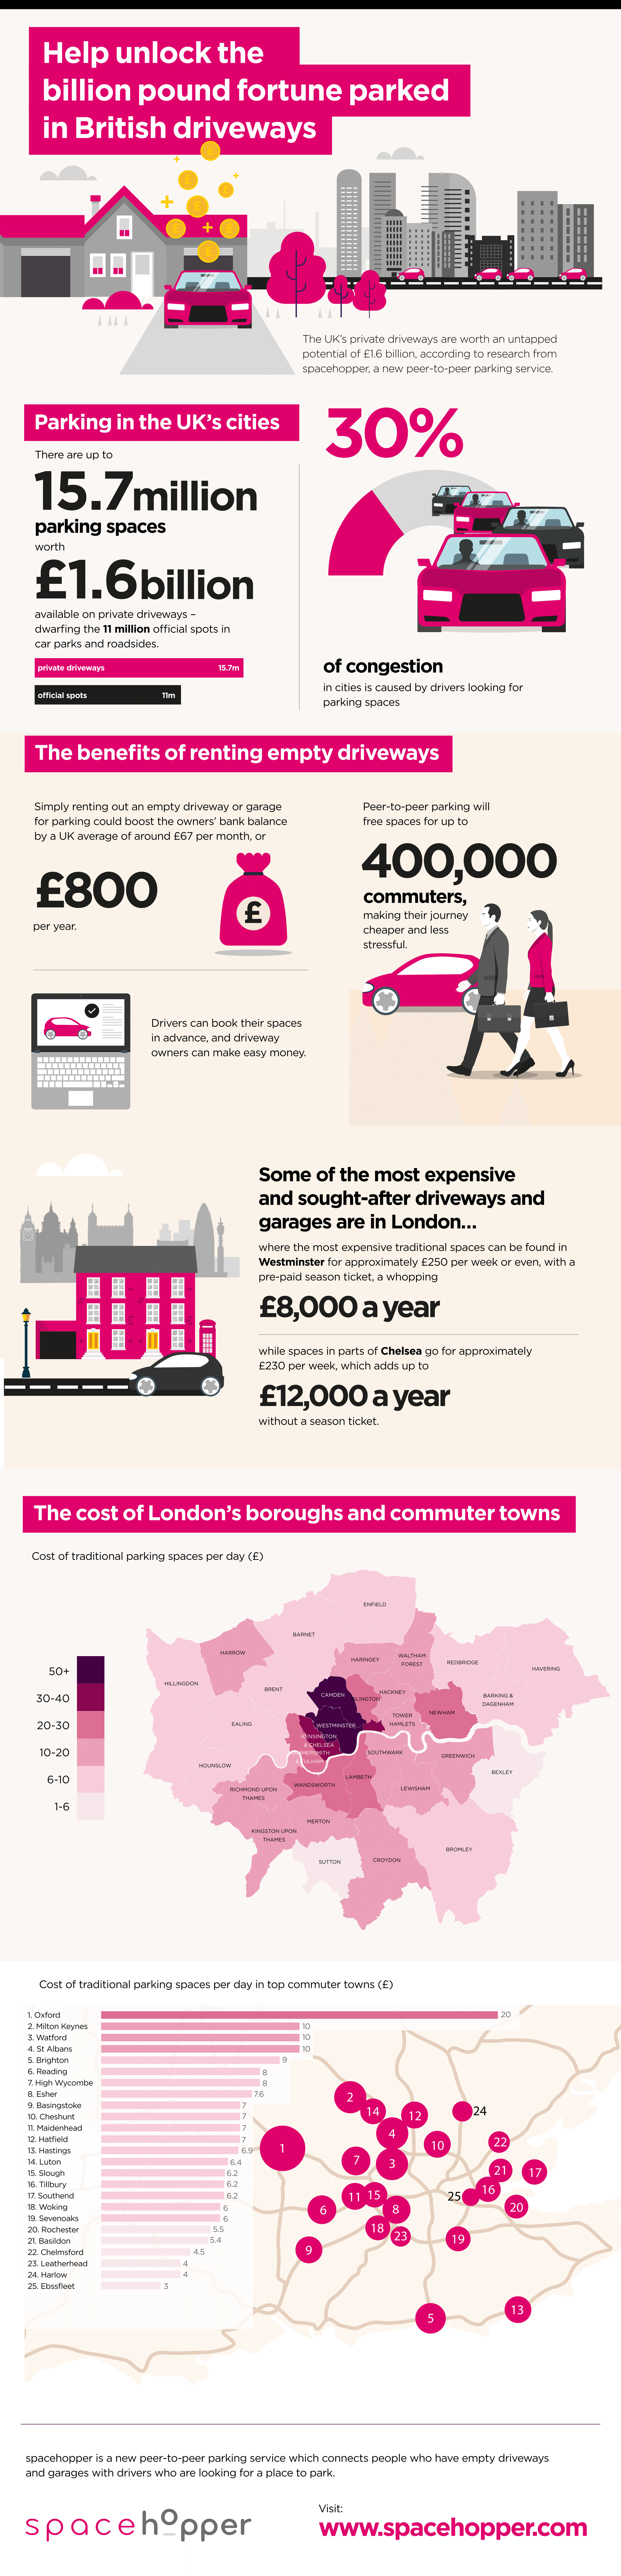 london-driveway-parking-spacehopper-infographic